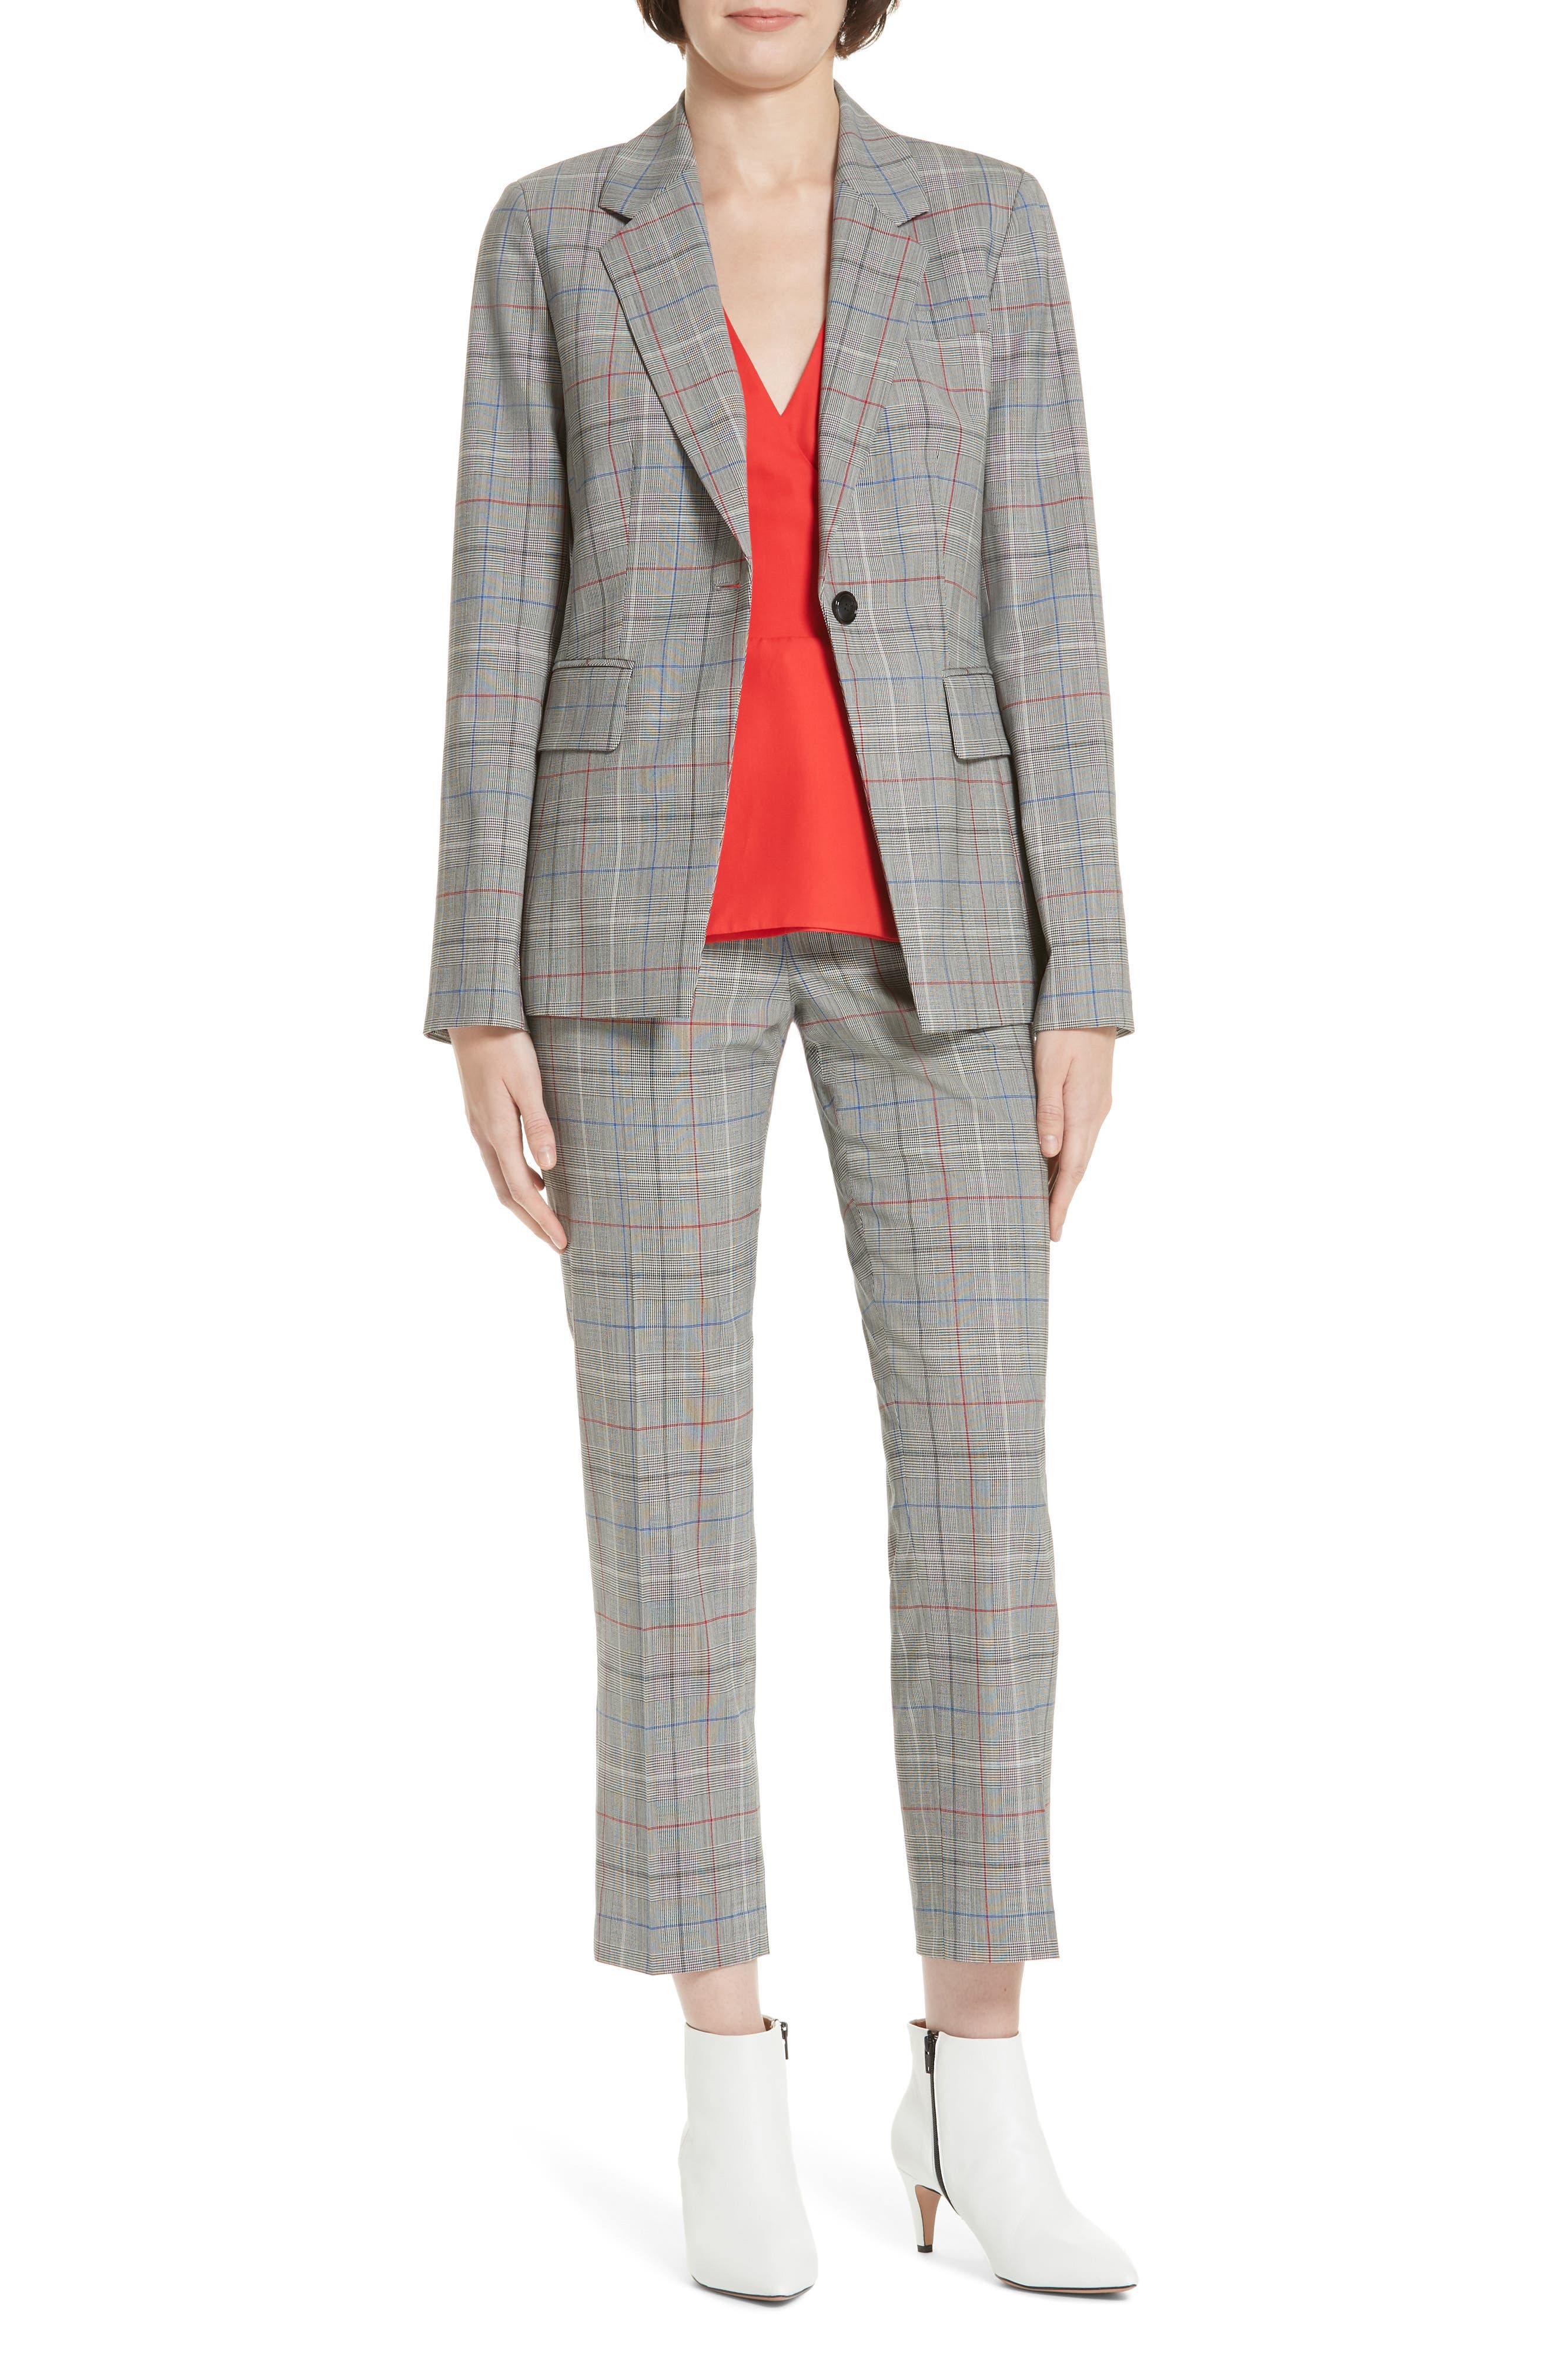 LEWIT,                             Check Stretch Wool Blazer,                             Alternate thumbnail 7, color,                             001